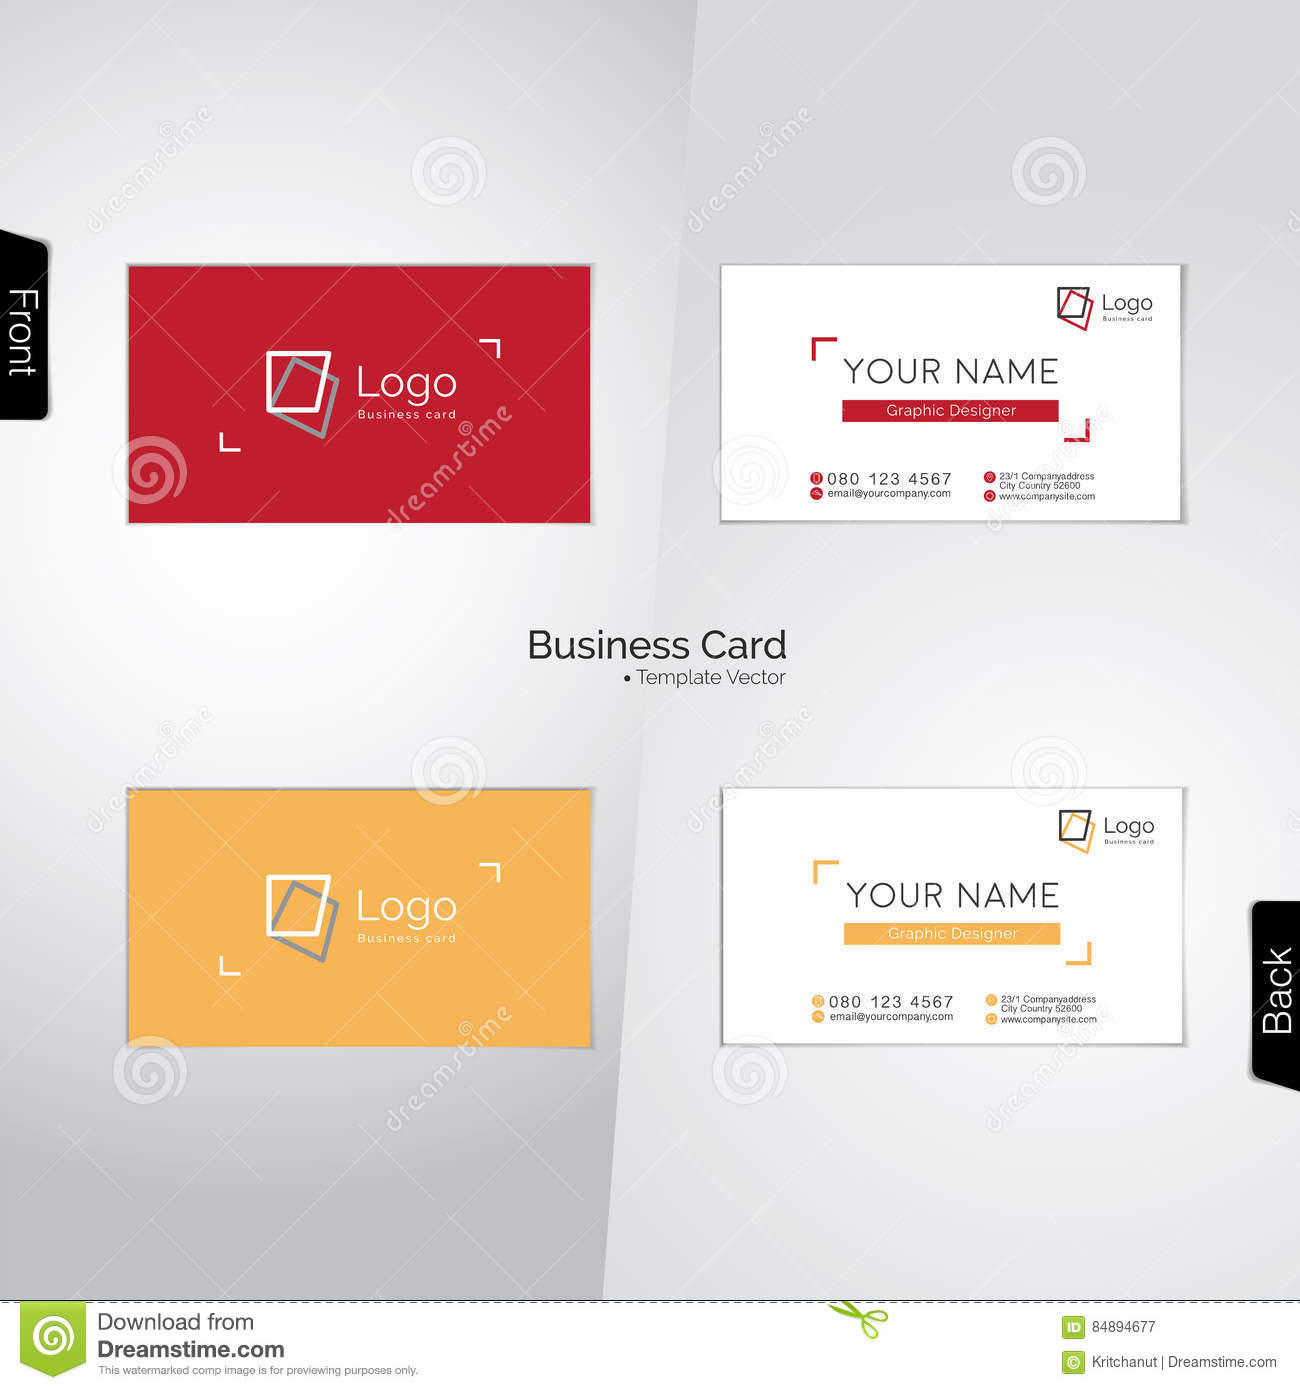 Download Cartes De Visite Professionnelle Photographe Et Concepteur Illustration Vecteur